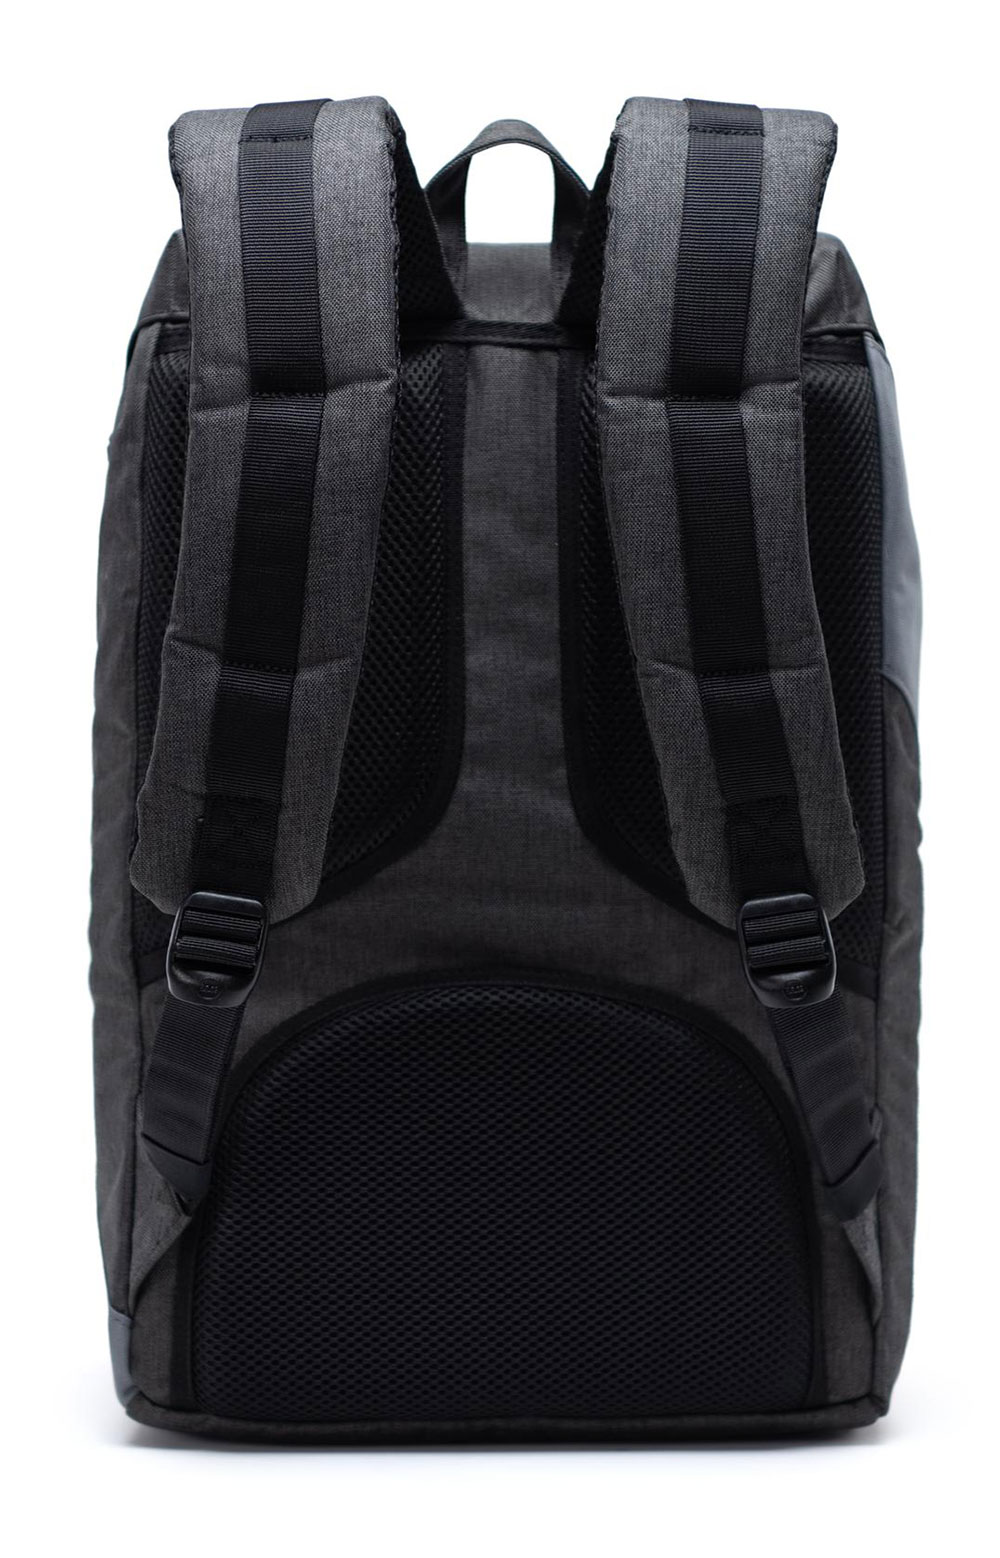 Little America Backpack - Black X/Quiet Shade/Periscope  4